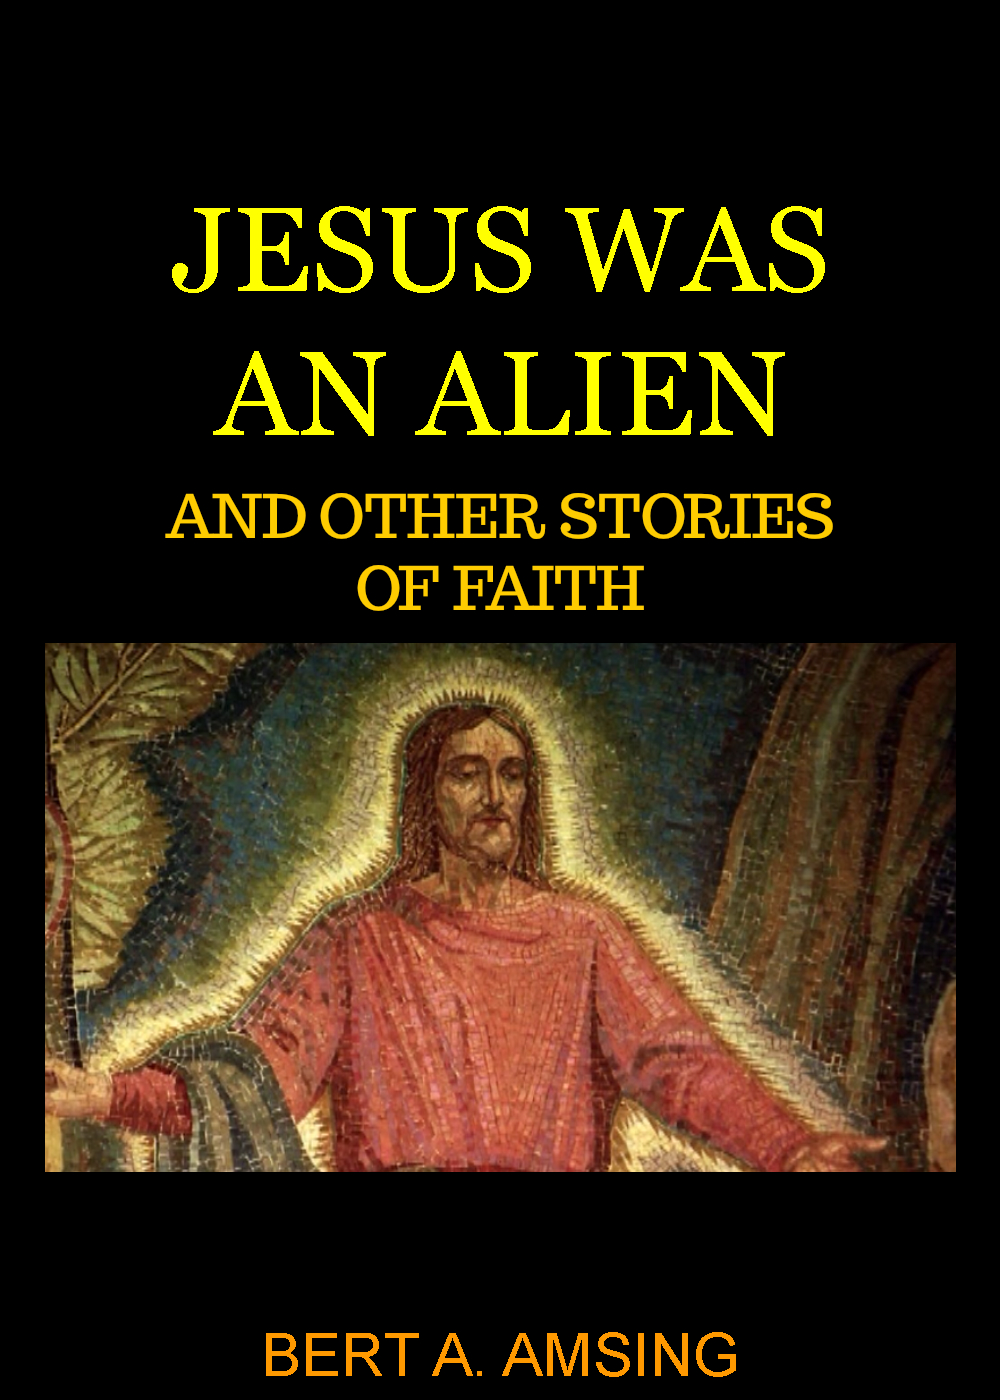 JESUS_WAS_AN_ALIEN_does_this_look_right_cover